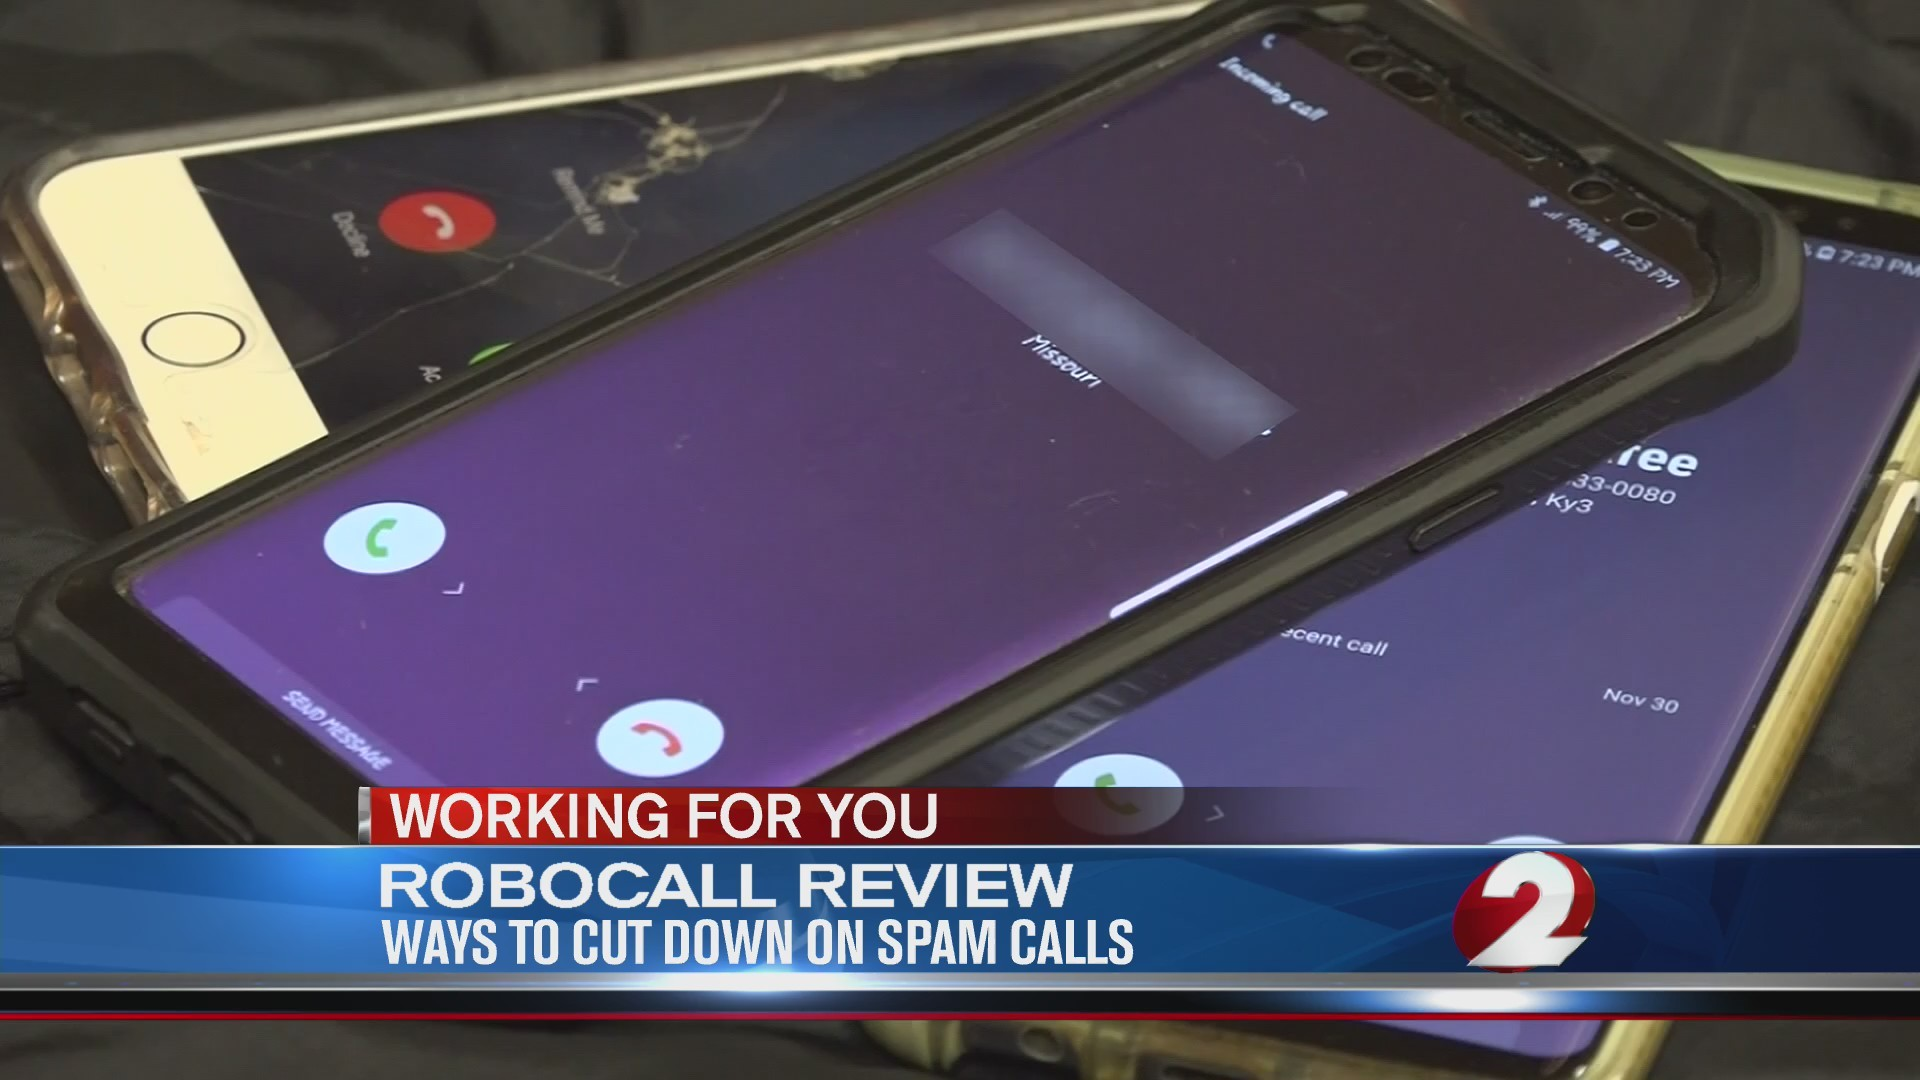 Ways to cut down on spam calls